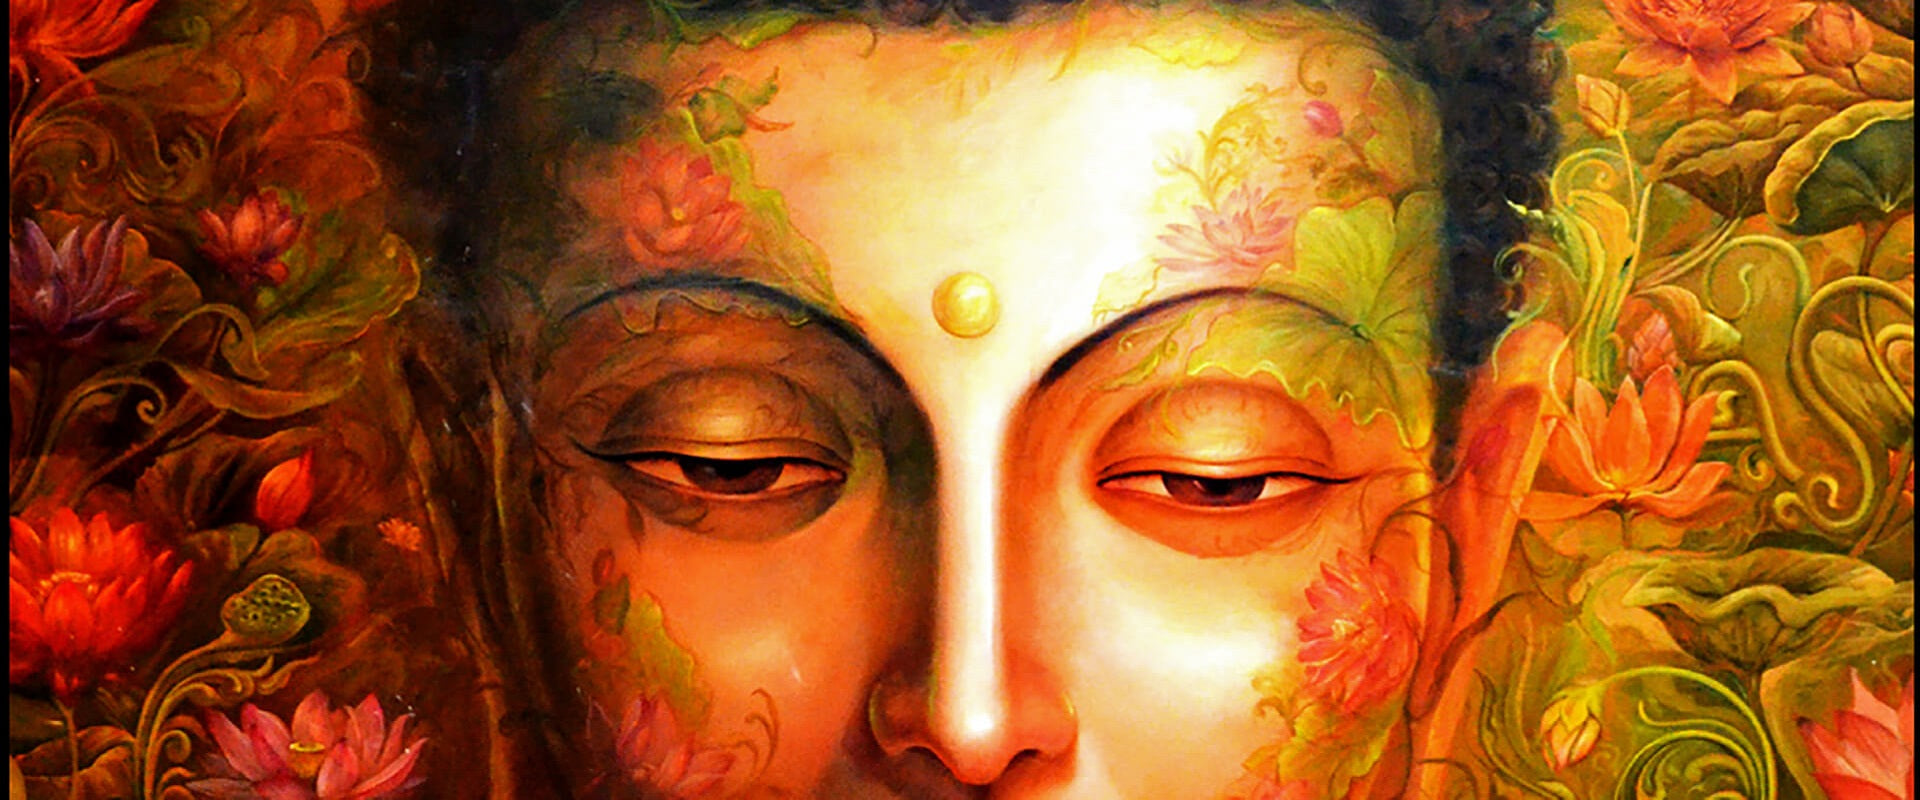 Buddha Paintings — Buddha Art Panels | Buy Posters, Frames, Canvas, Digital Art & Large Size Prints